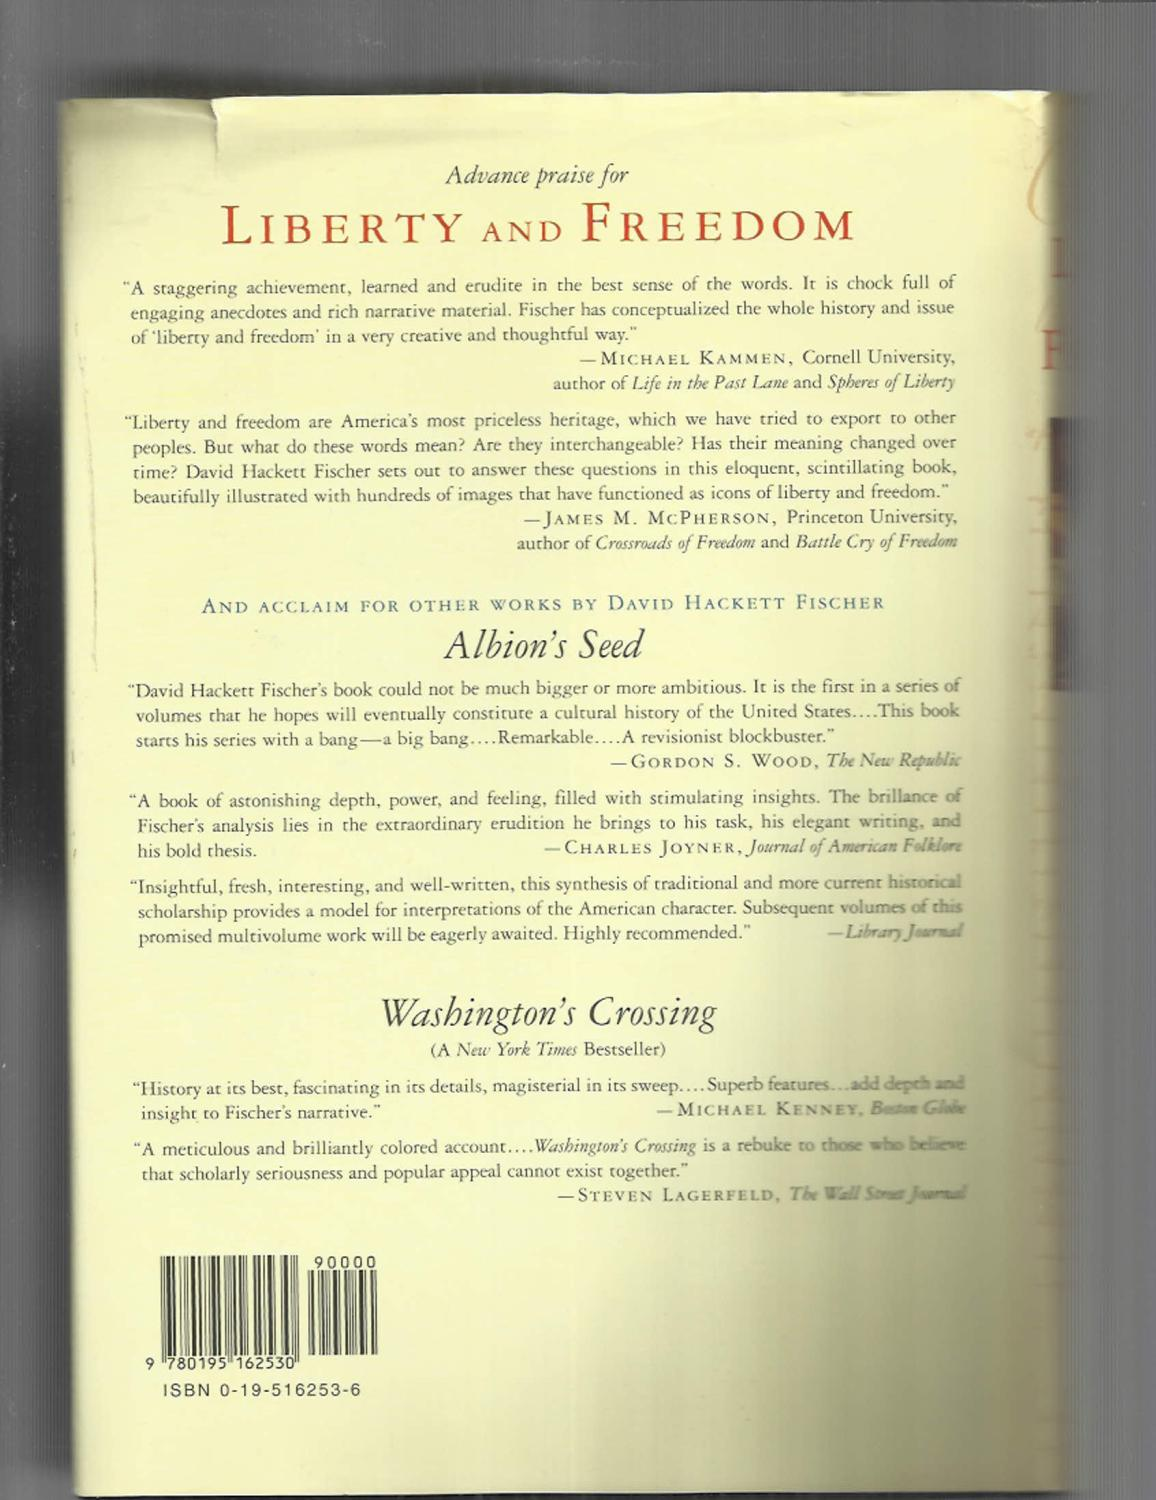 LIBERTY AND FREEDOM: A Visual History Of